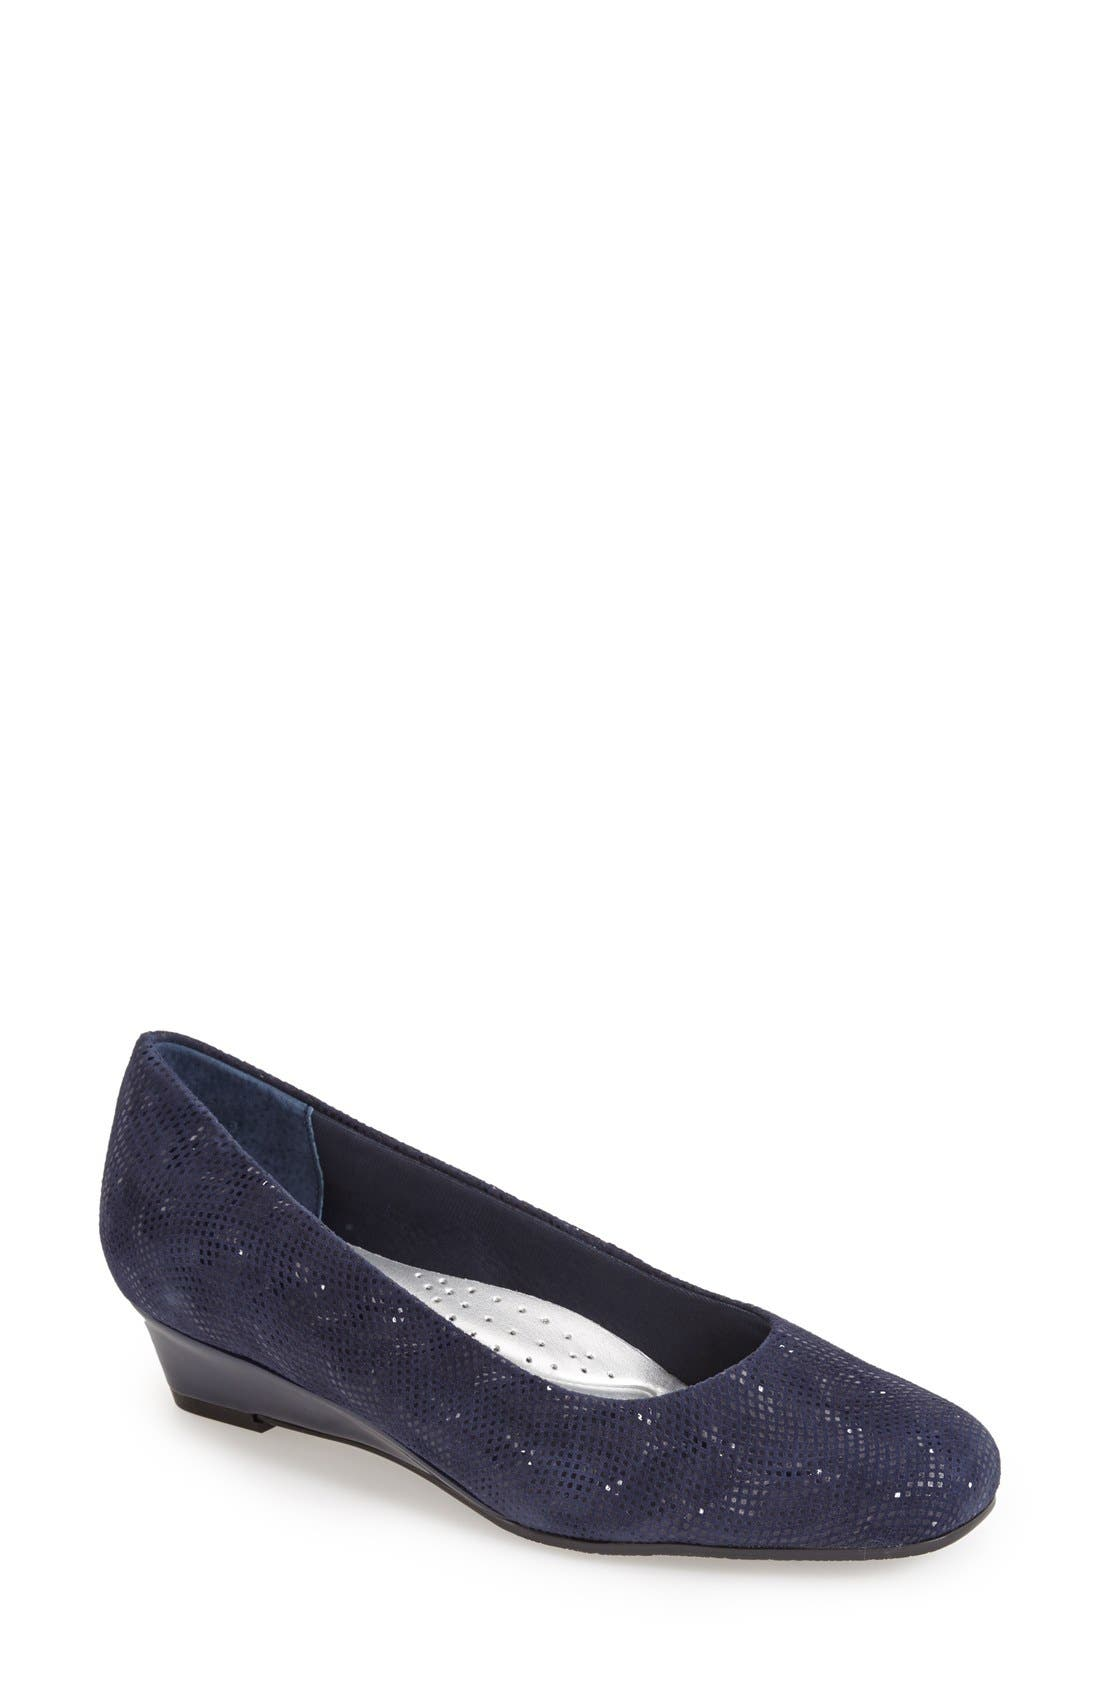 'Lauren' Pump,                             Main thumbnail 1, color,                             Navy 3D